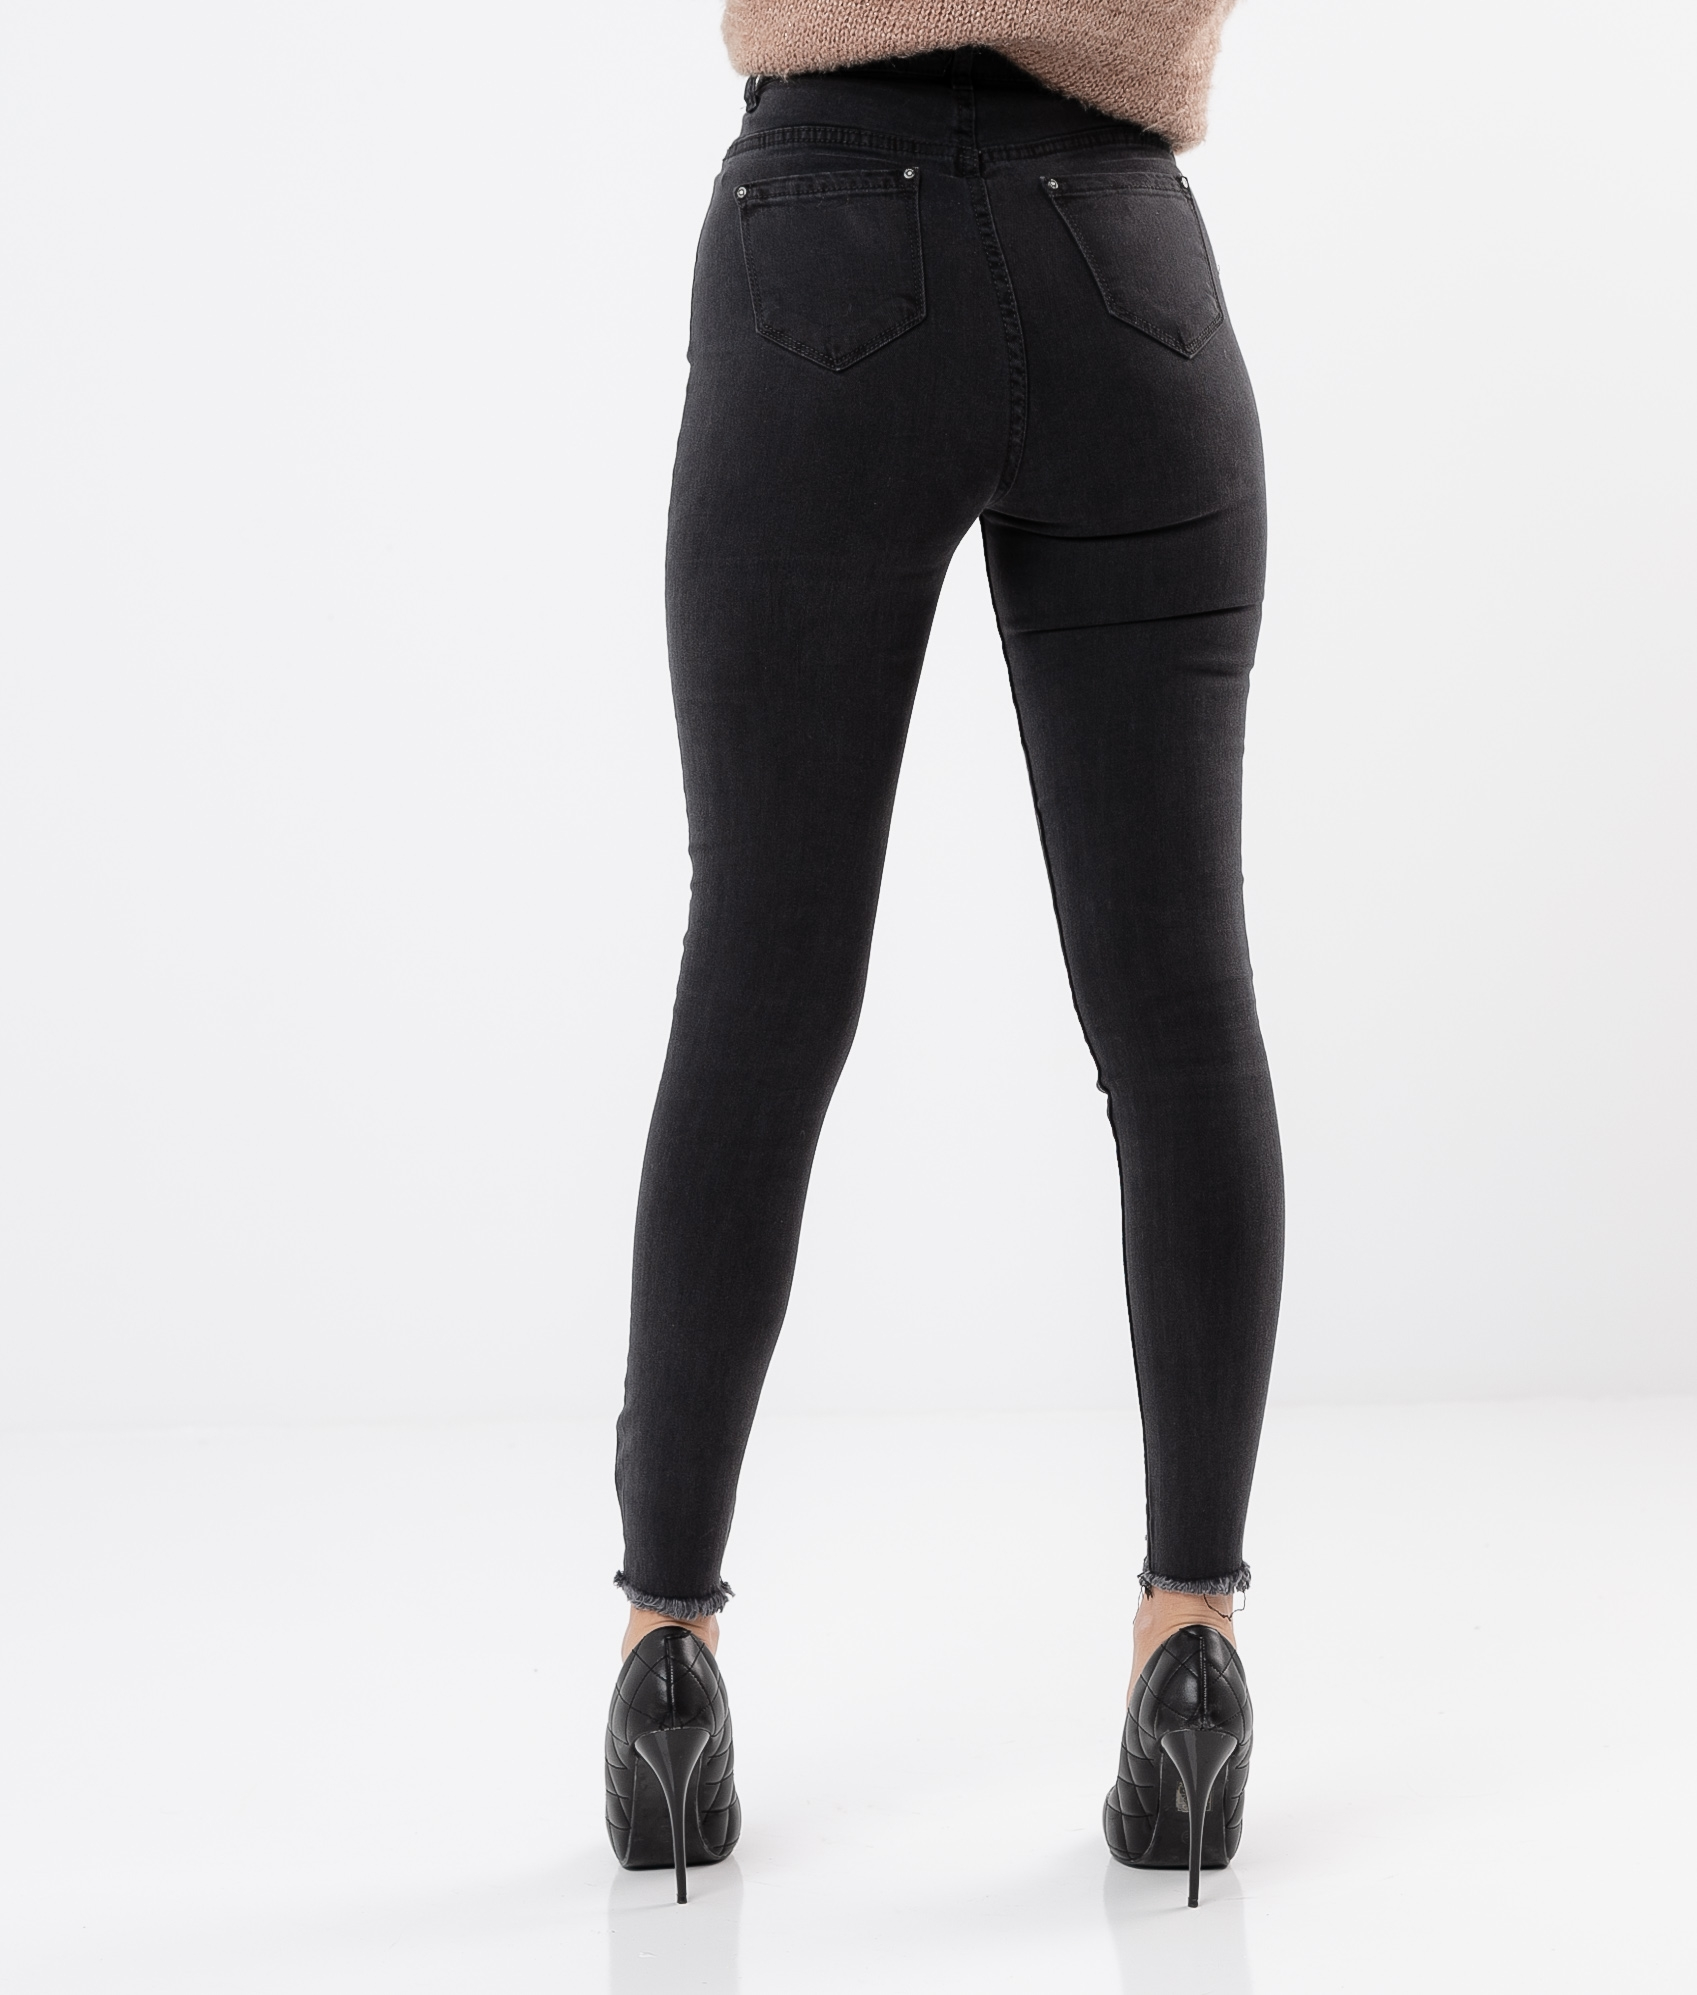 CONESA TROUSERS - BLACK